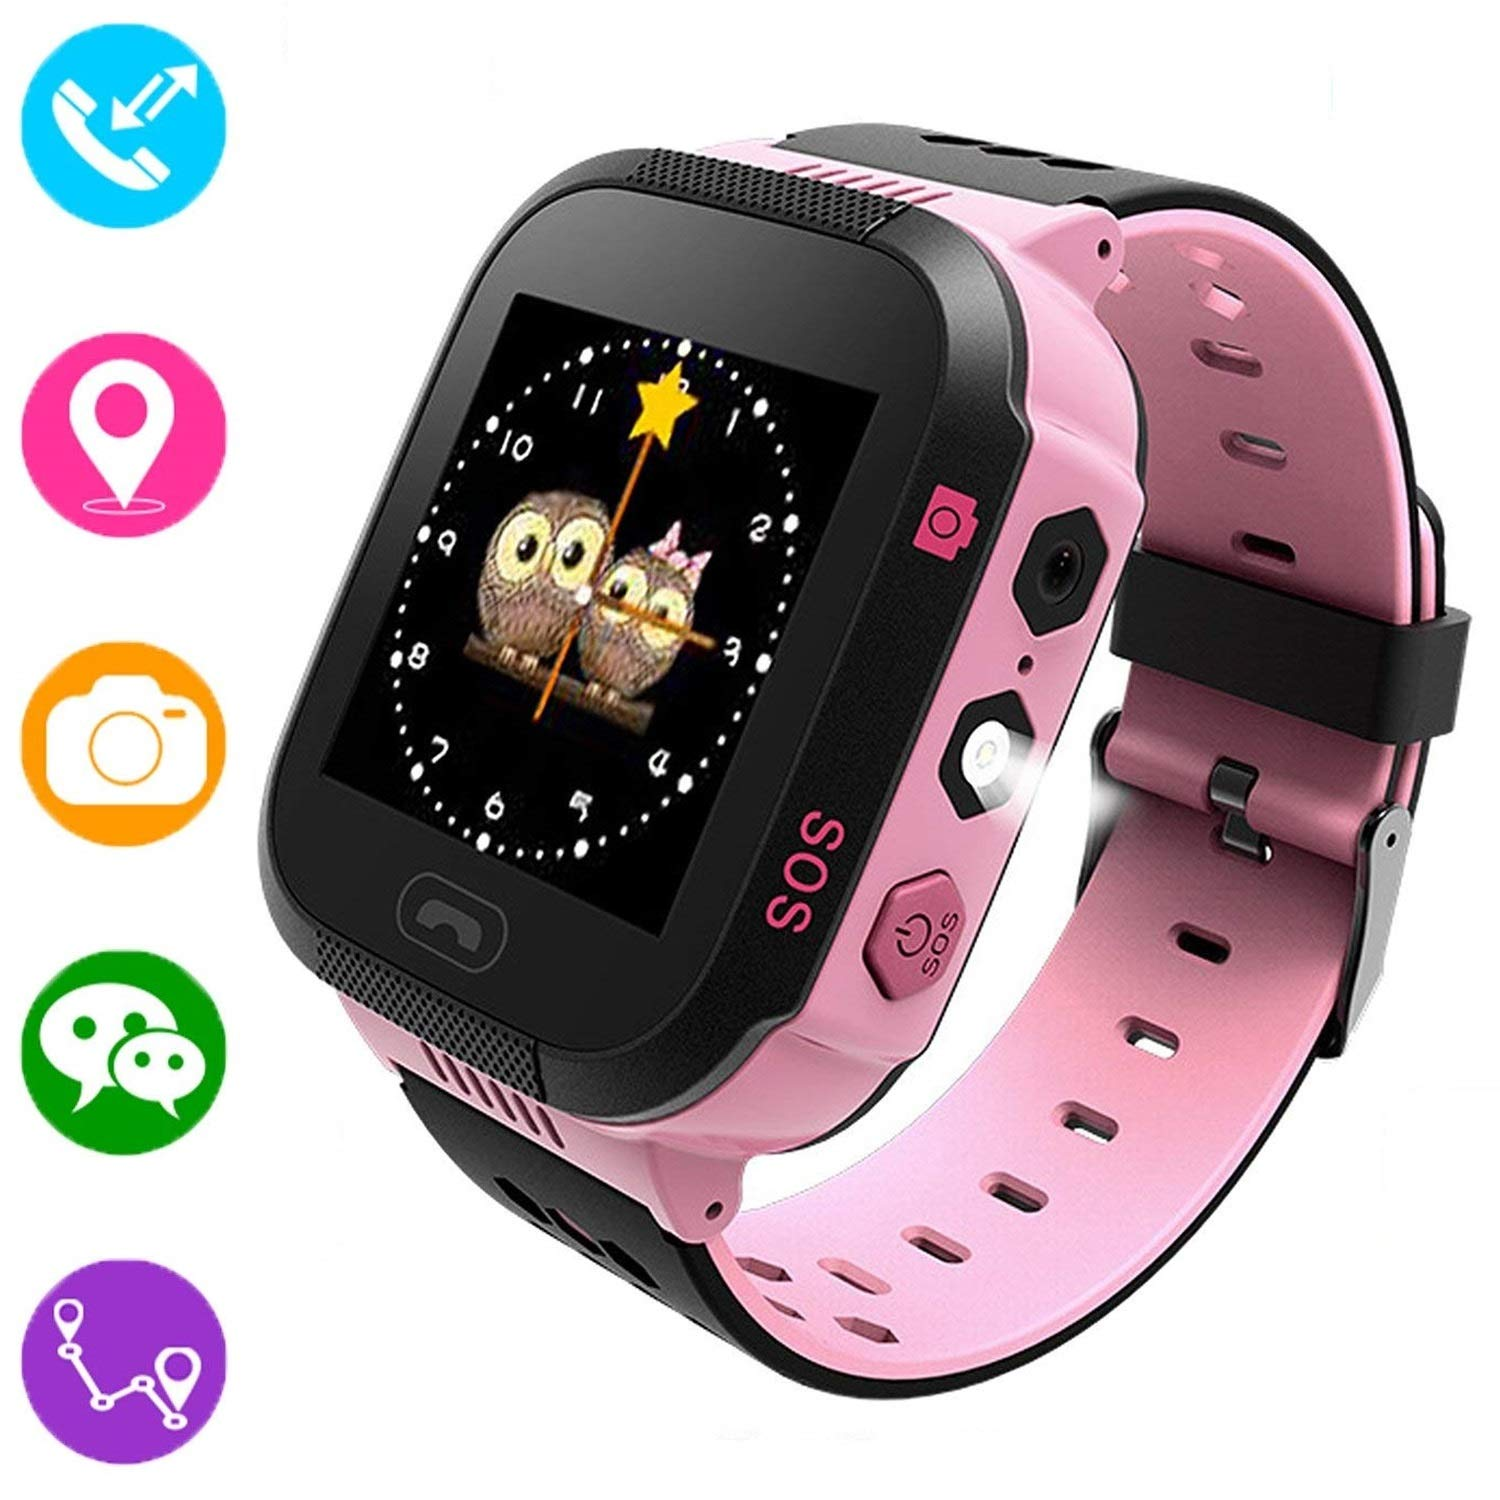 Kids Smart Watch,1.44 inch Touch Screen GPS Tracker for Children Girls Boys Summer Outdoor Birthday with Camera SIM Calls Anti-lost SOS Smartwatch Bracelet for iPhone Android Smartphone (Pink)